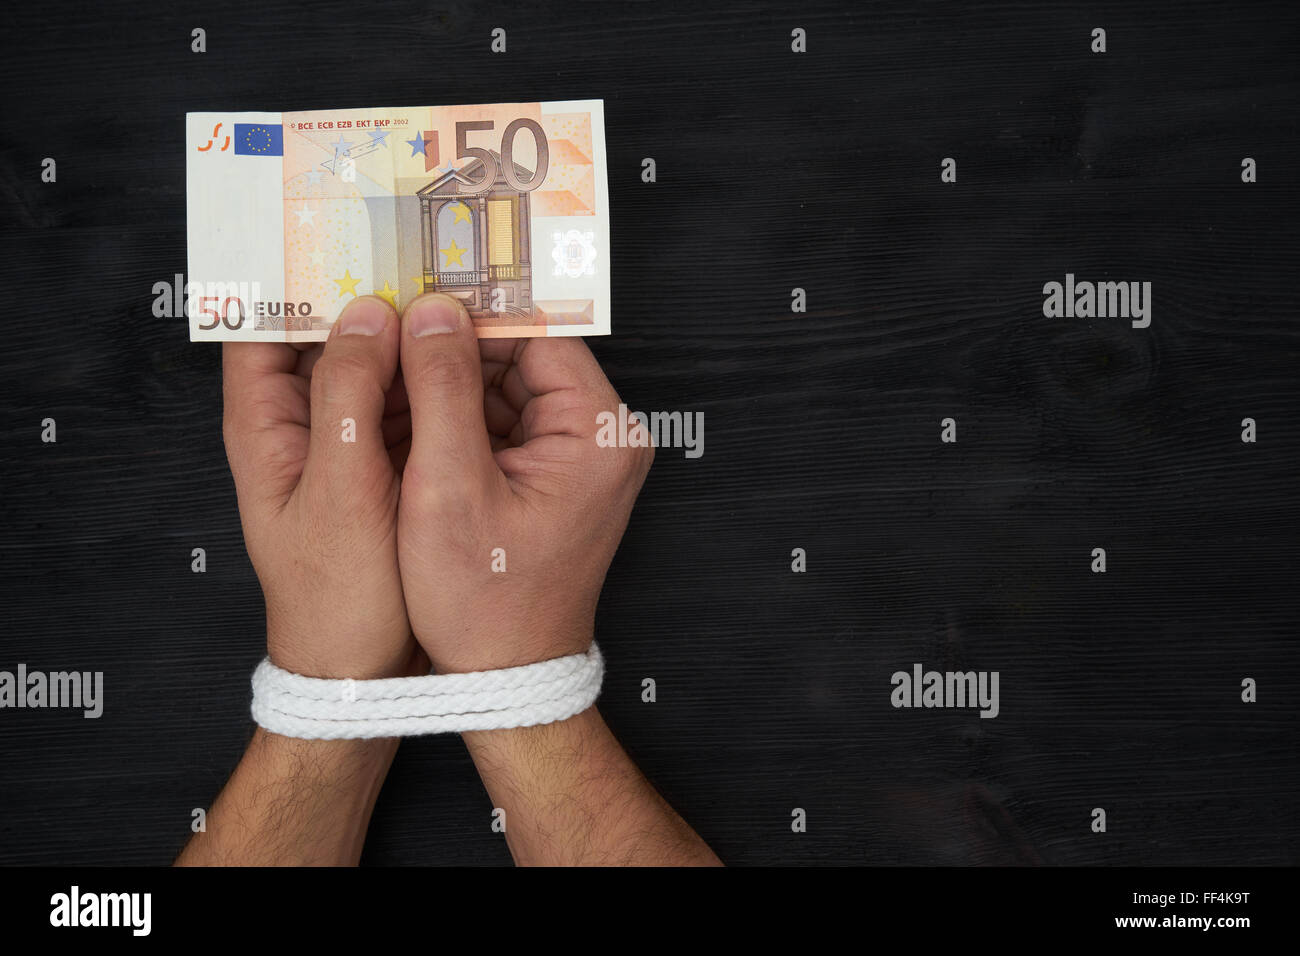 Prisoner of profit - man holding money with hands tied up - Stock Image